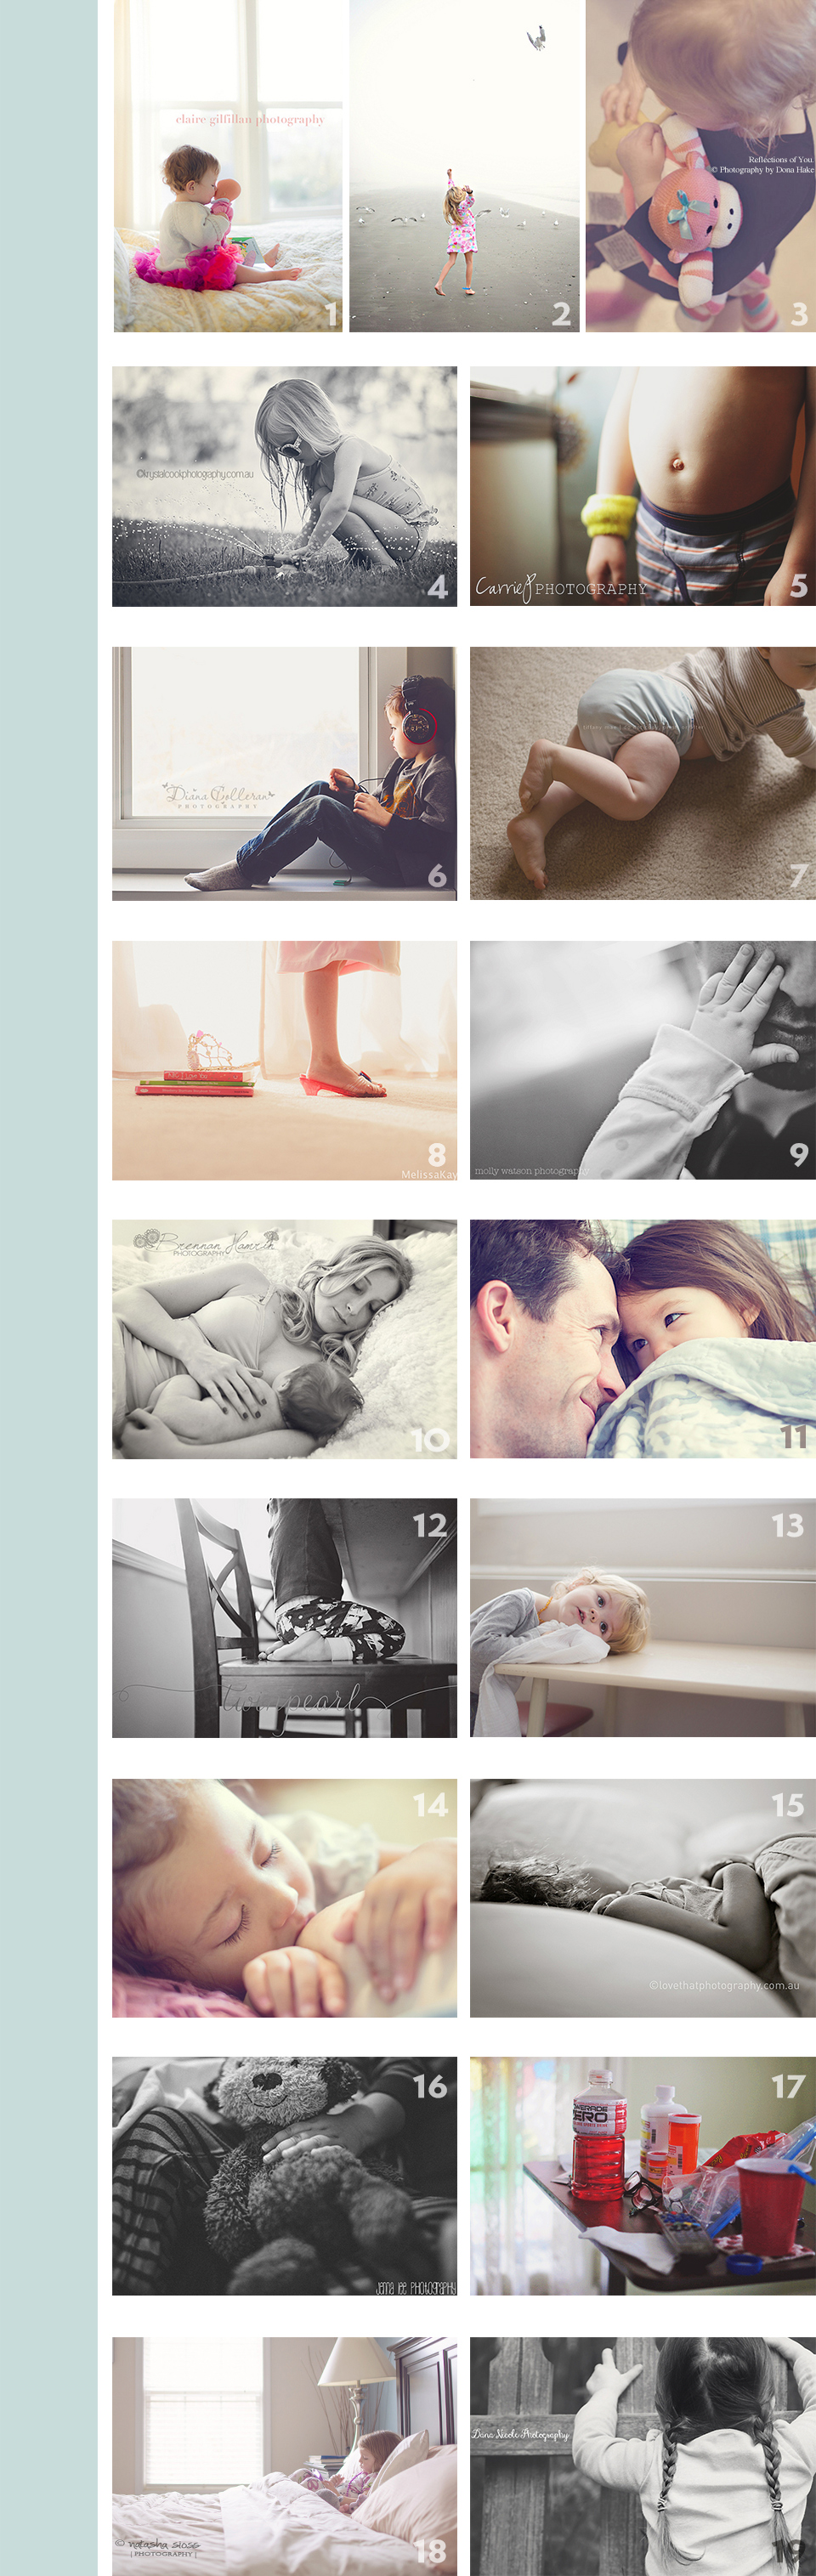 Lifestyle Photography - Capturing Indoor Candid Photos - Paint the Moon Photoshop Actions - Children Photography